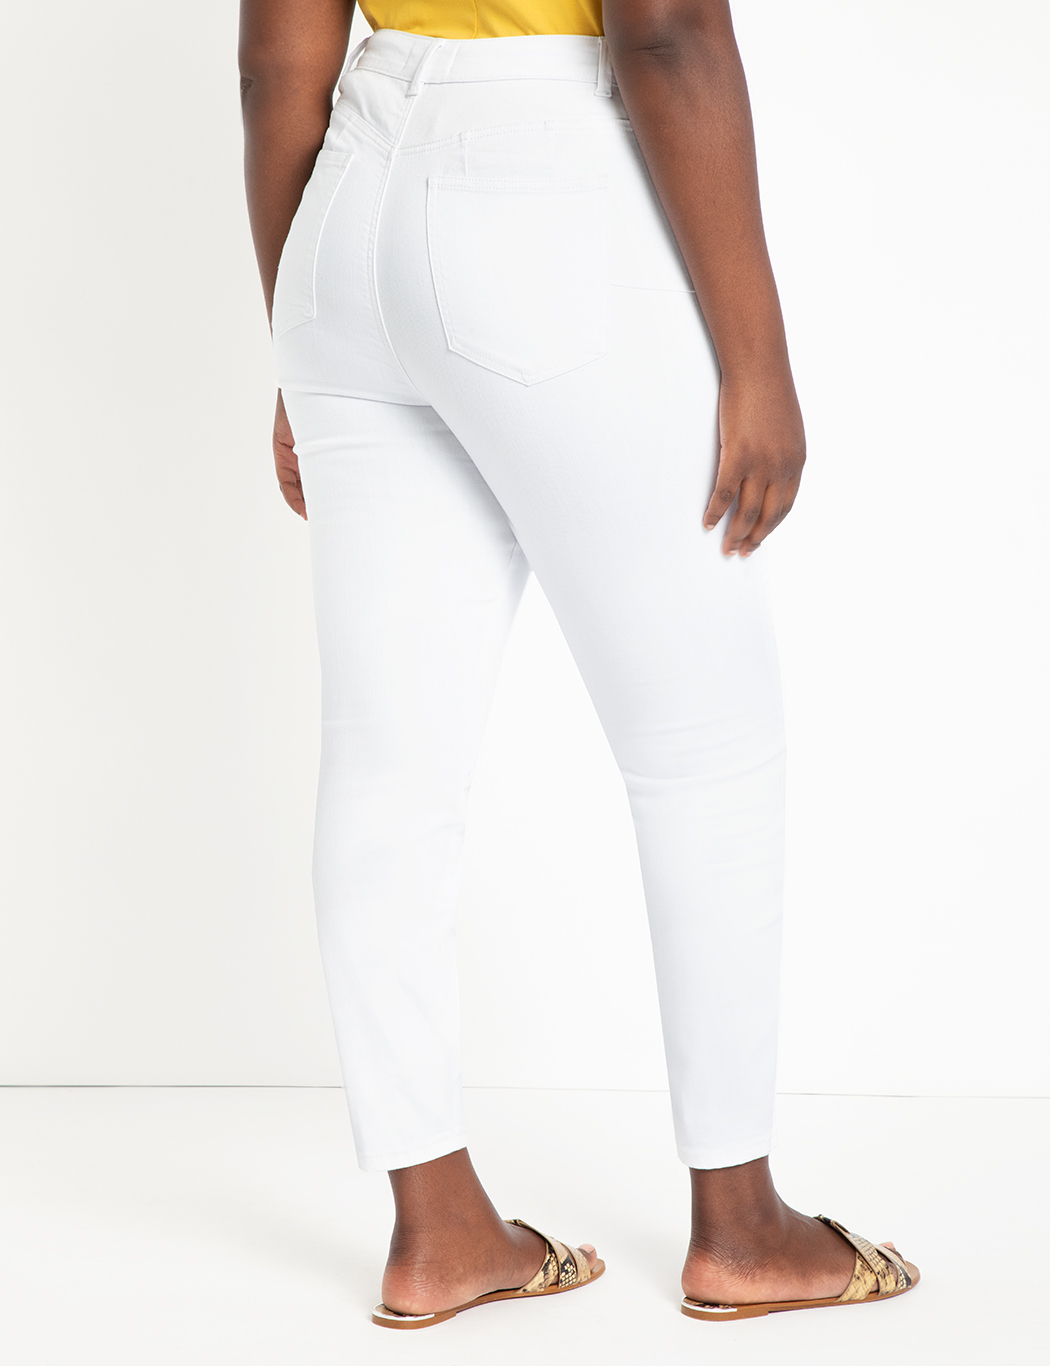 Classic Fit Peach Lift Jean